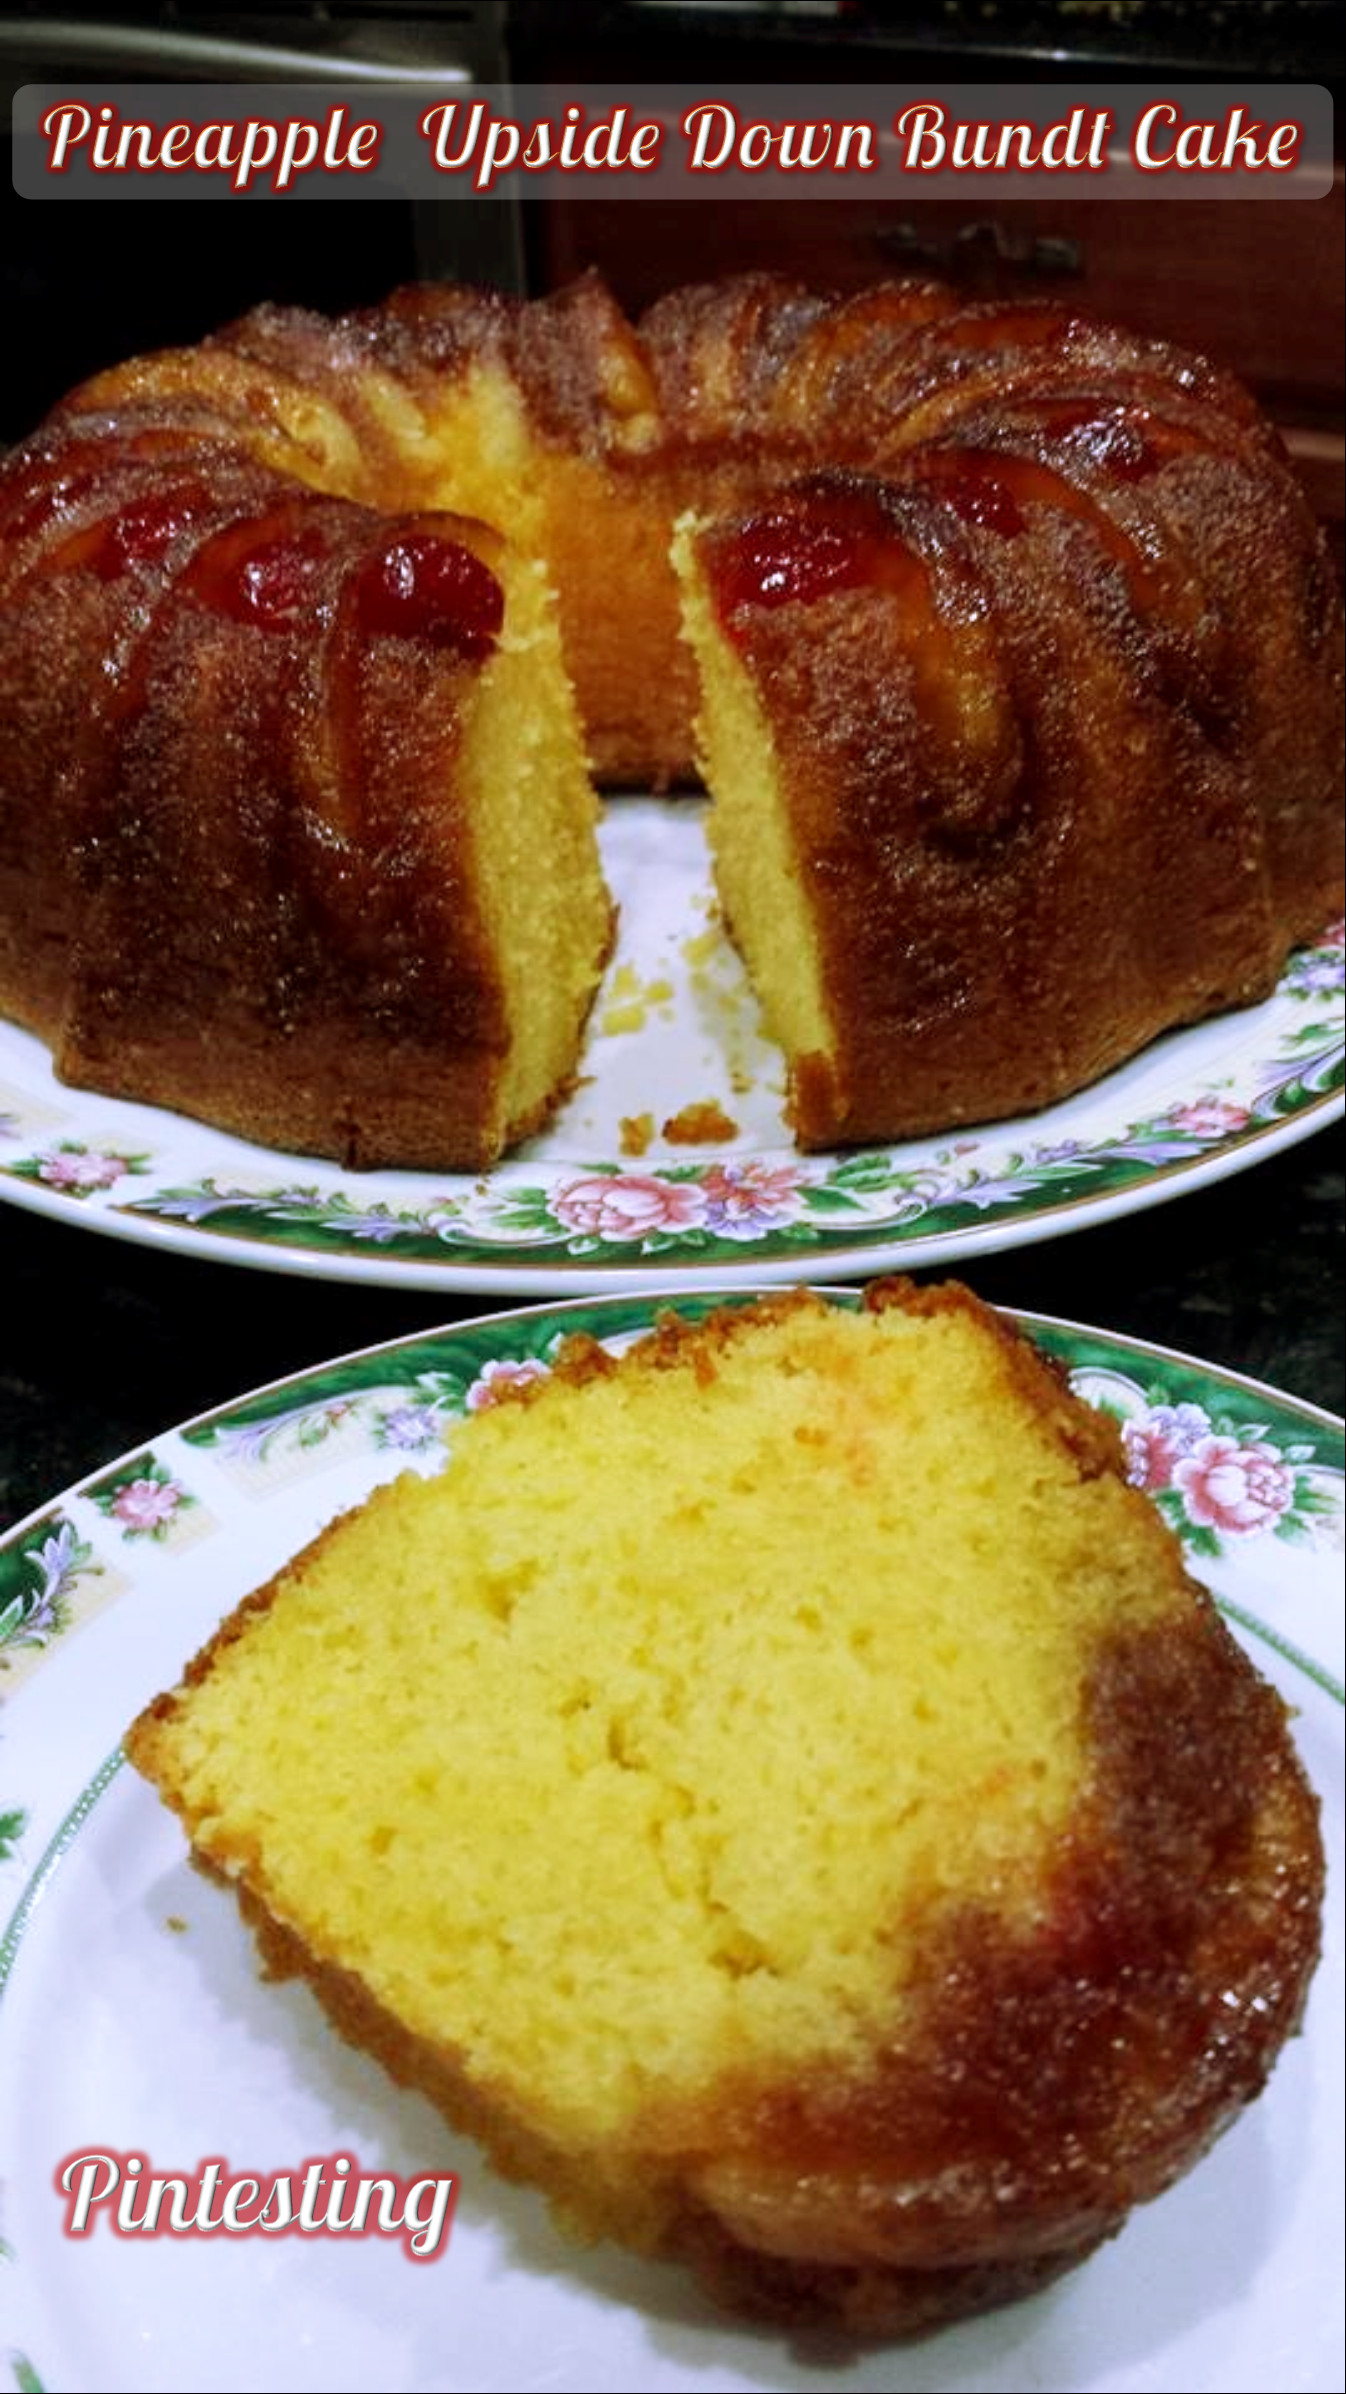 Upside Down Pineapple Bundt Cake  Pintesting Pineapple Upside Down Bundt Cake